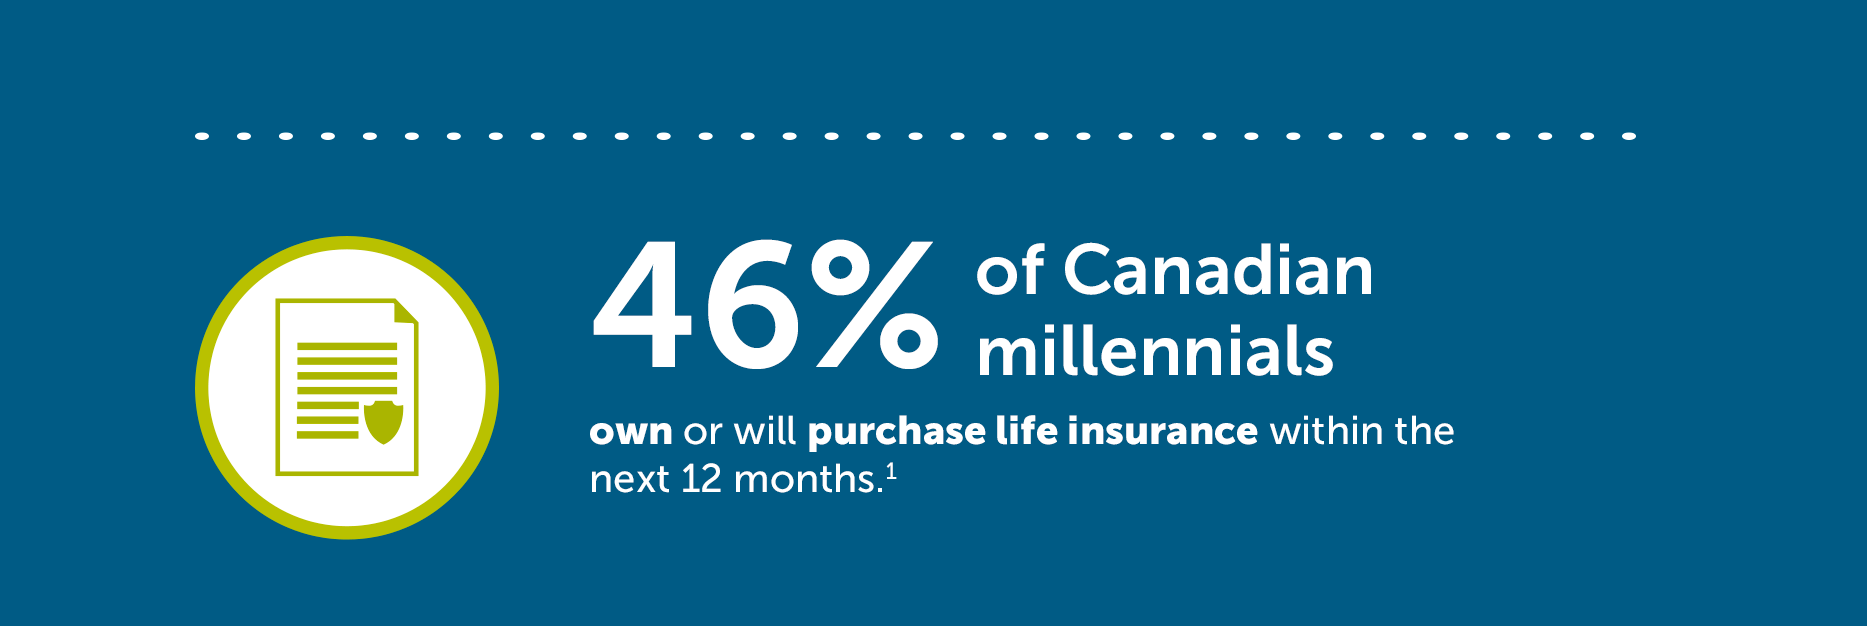 Millennial Life Insurance Statistic 1